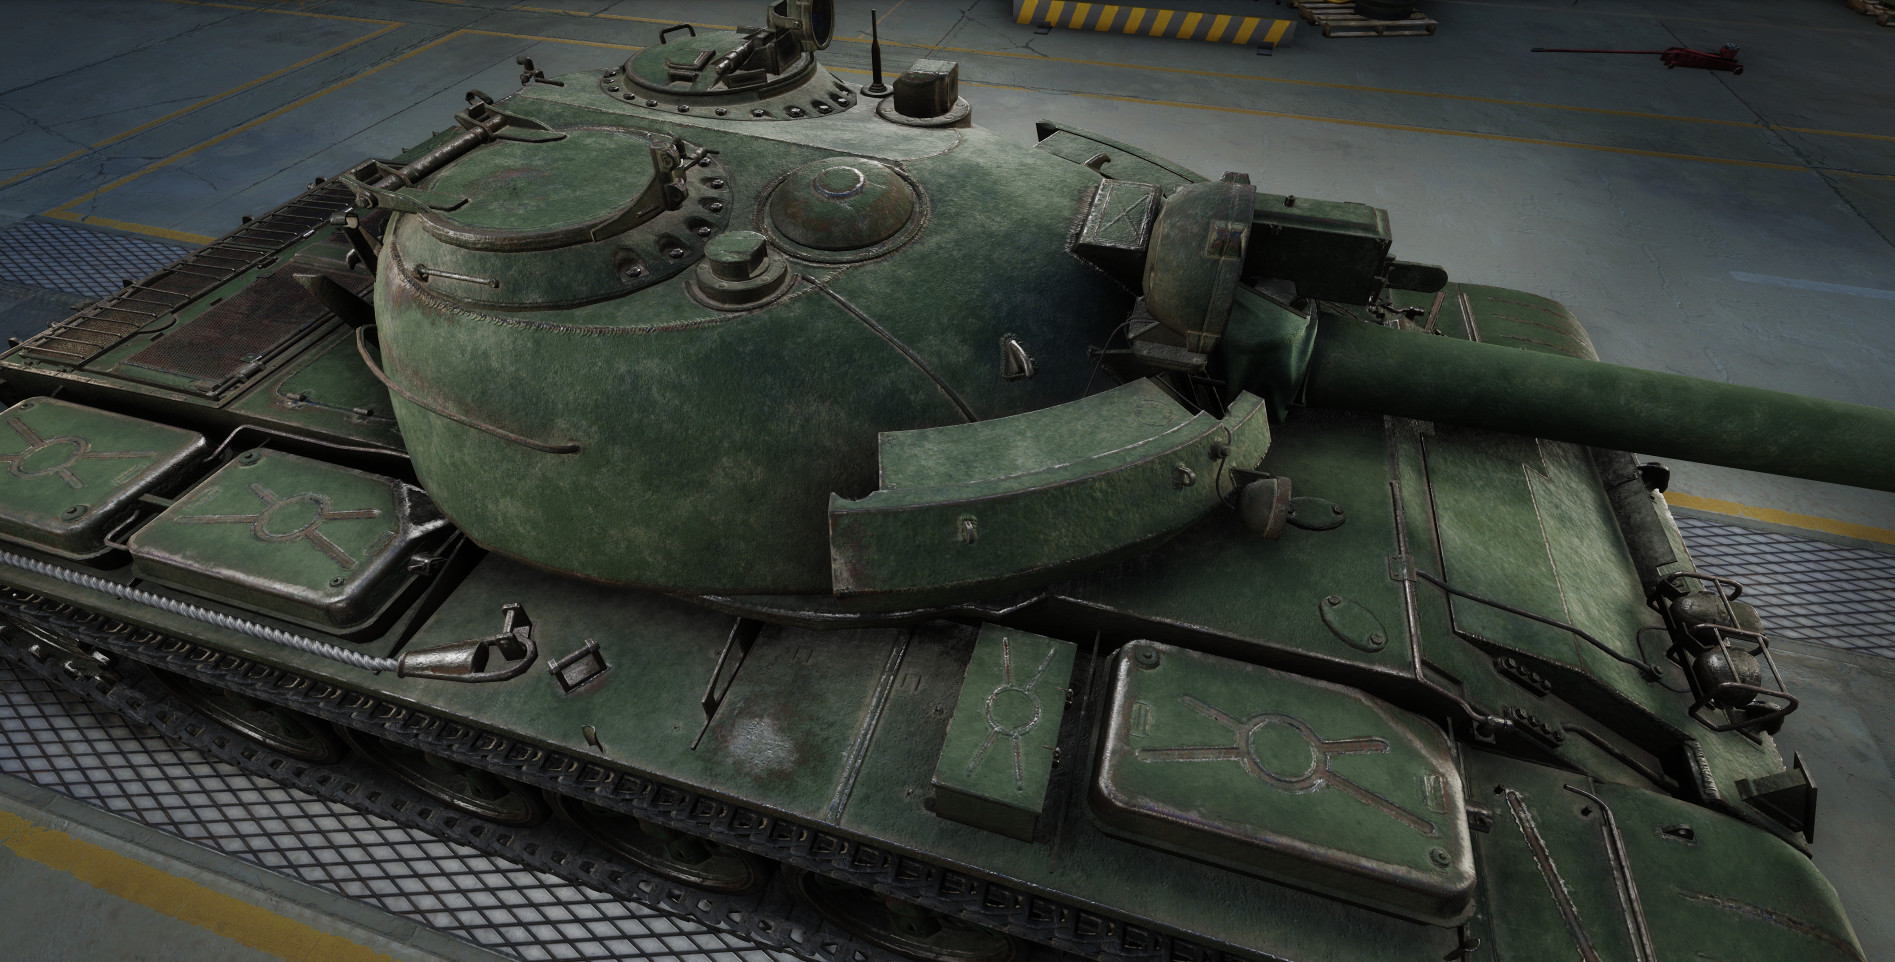 Brx boyles t 55 variant screens 08